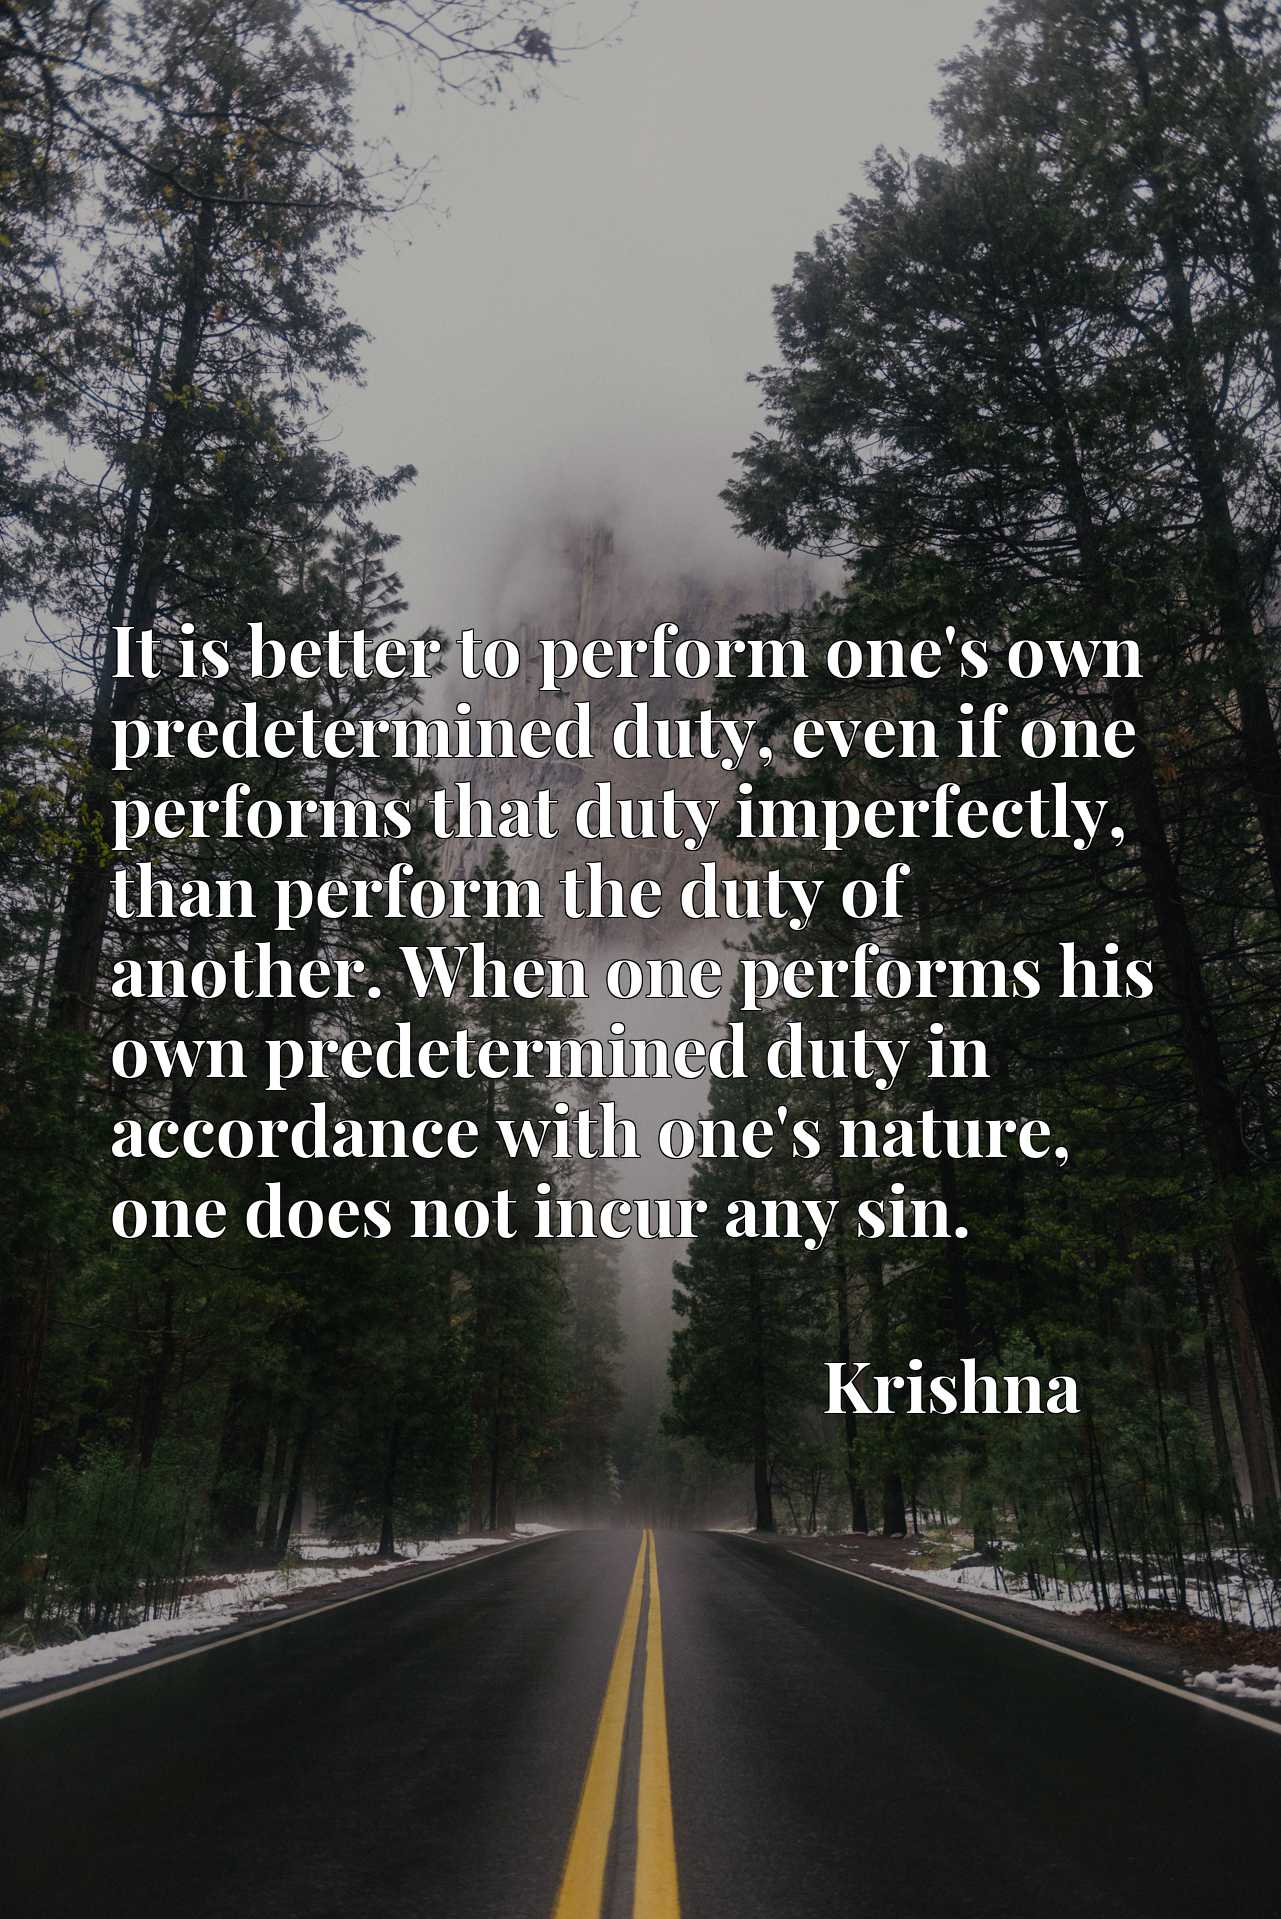 It is better to perform one's own predetermined duty, even if one performs that duty imperfectly, than perform the duty of another. When one performs his own predetermined duty in accordance with one's nature, one does not incur any sin.